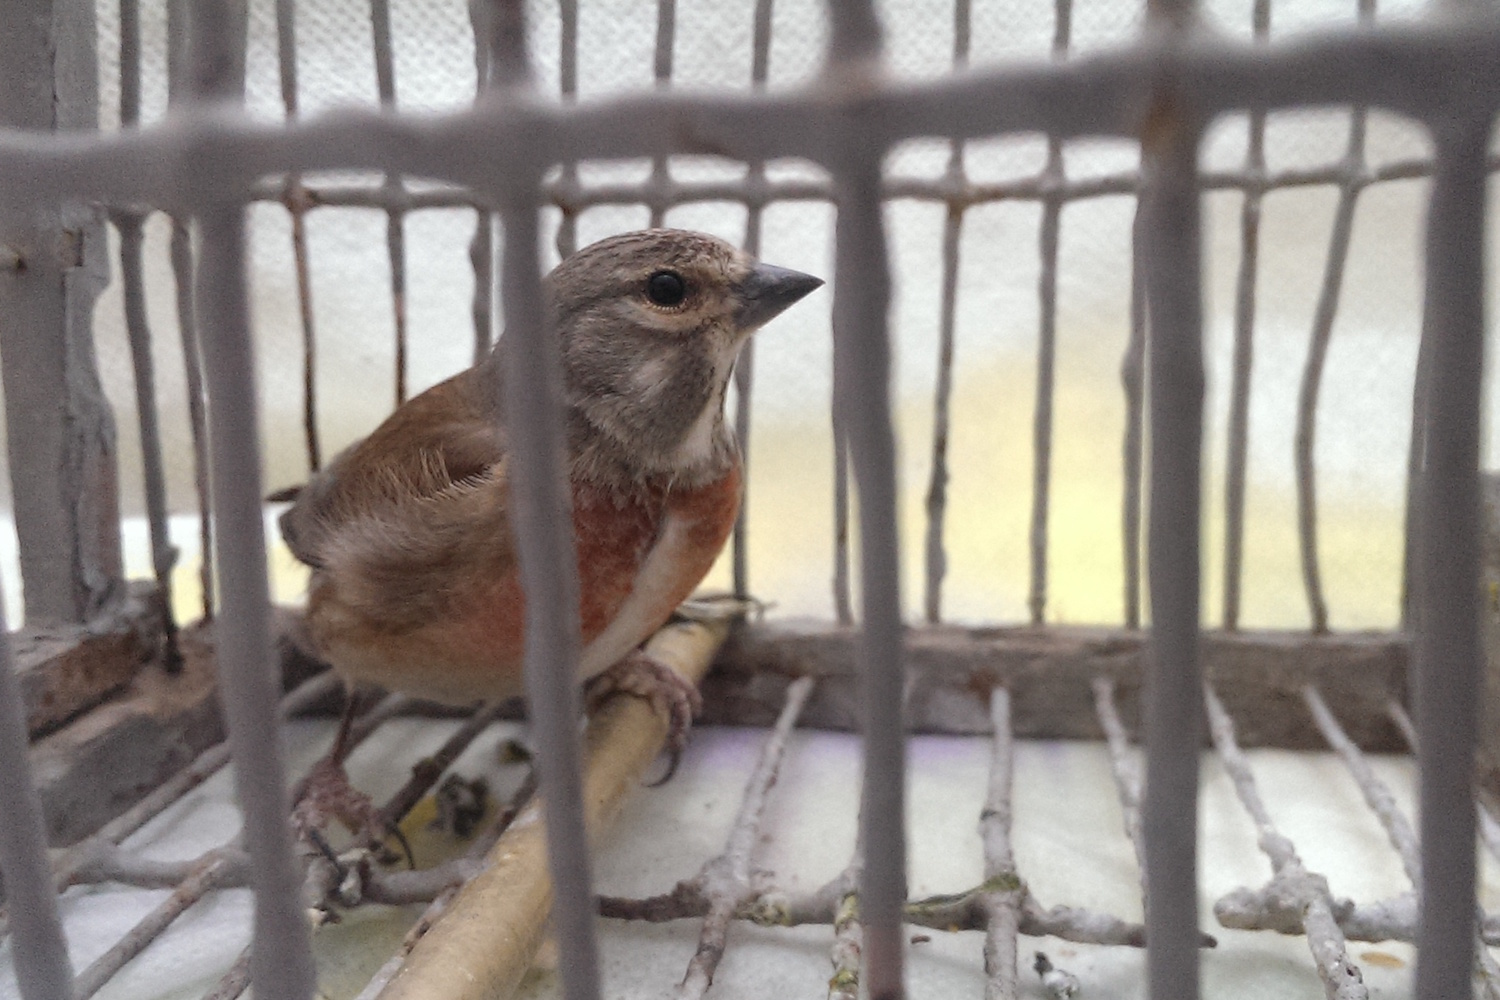 European court finds Malta guilty in bird-trapping case